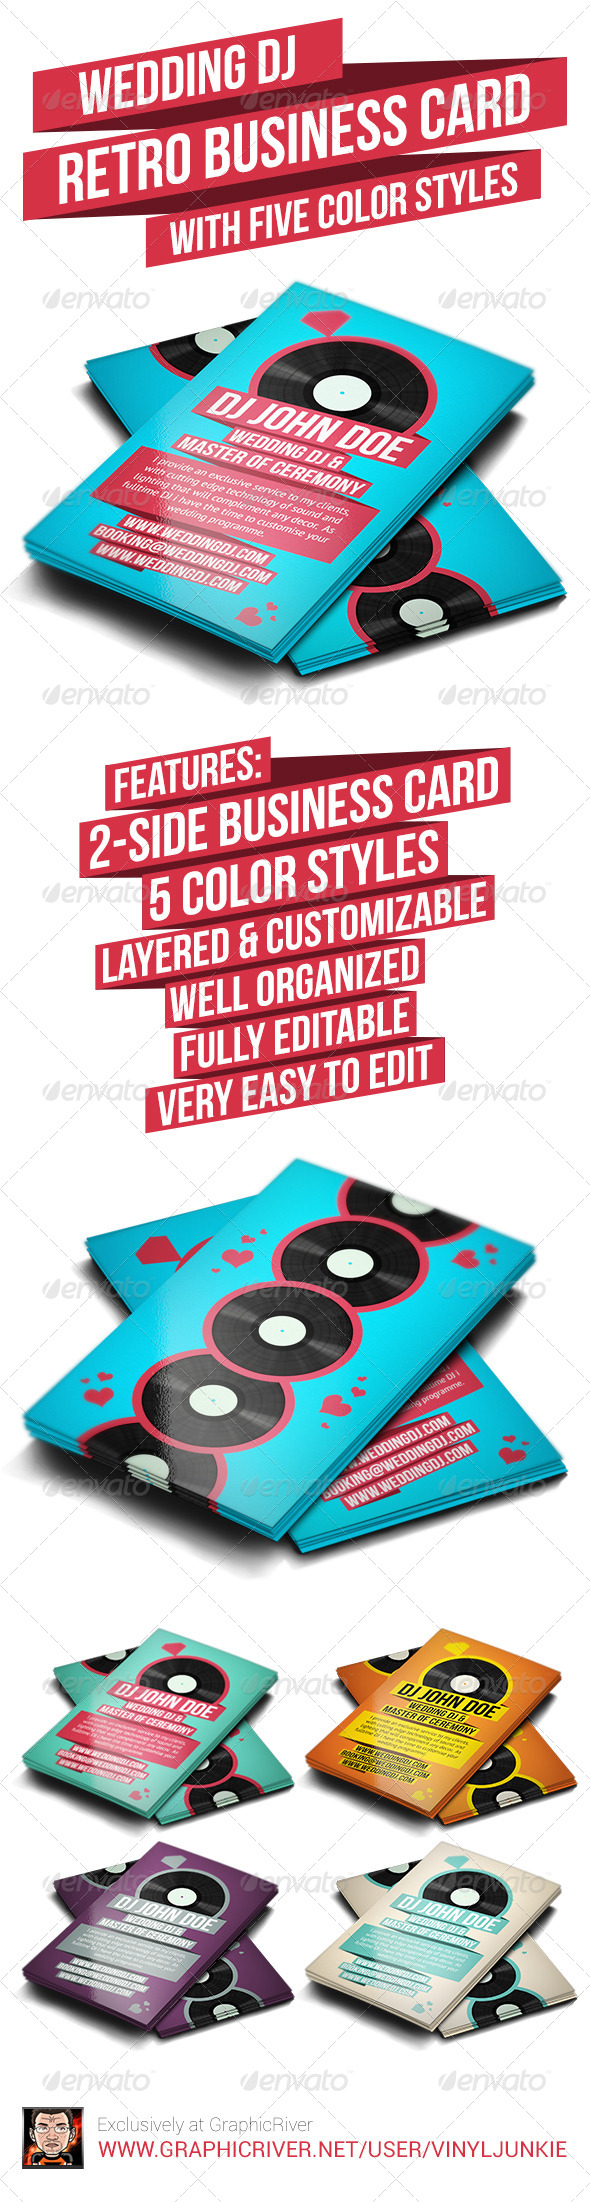 Wedding DJ Retro Business Card - Industry Specific Business Cards